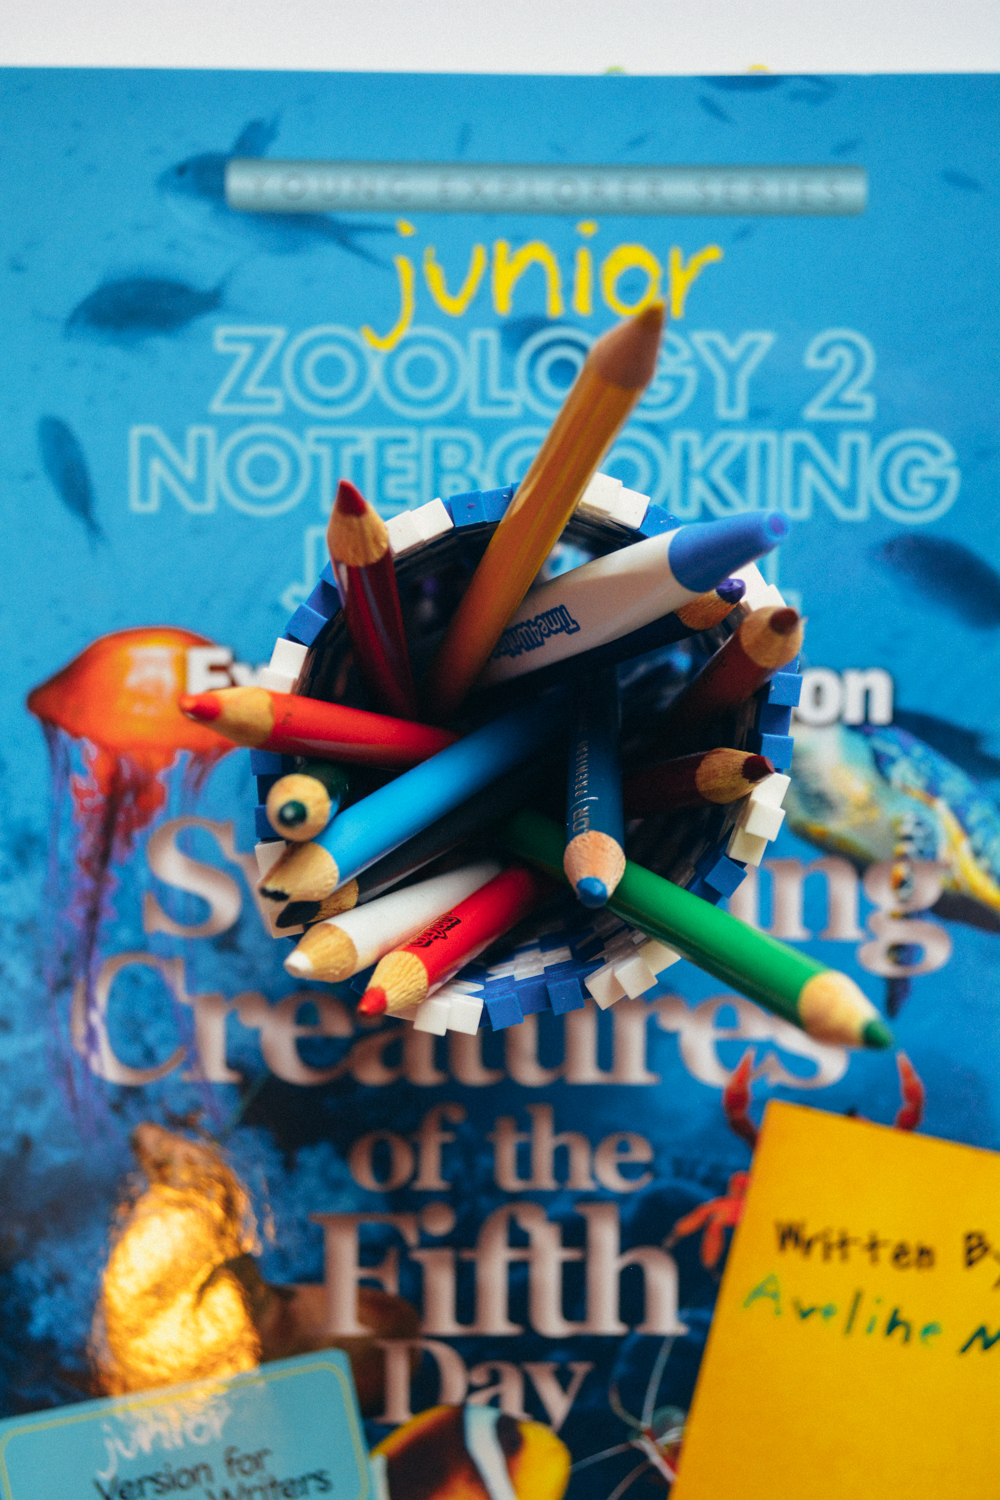 Review of Apologia Science Junior Notebooking Journal